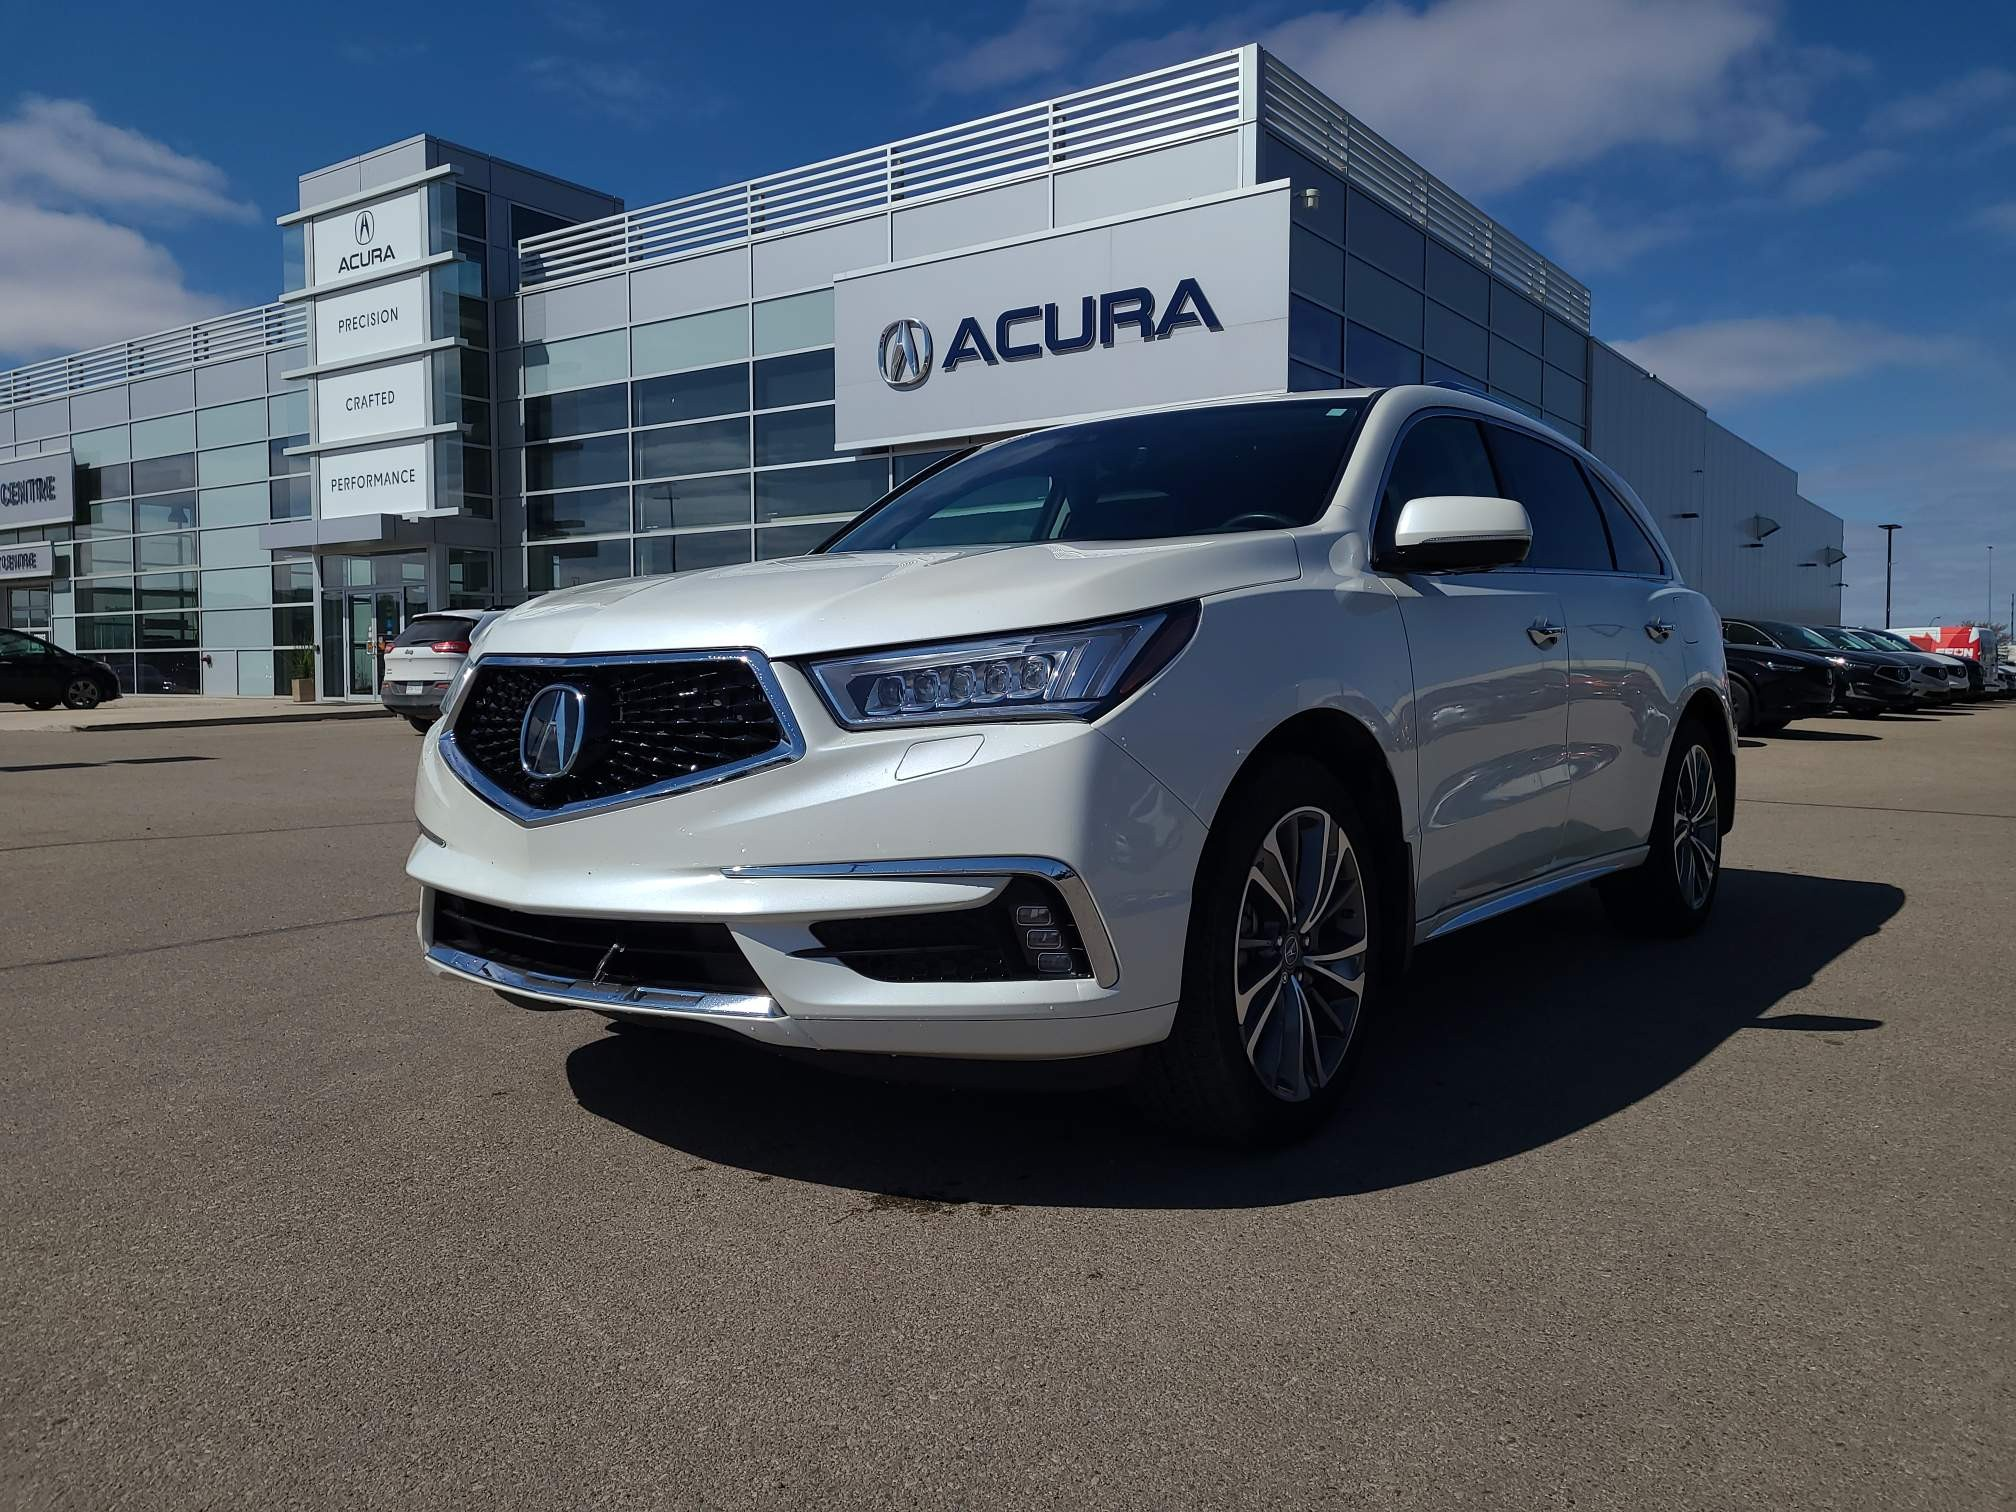 used 2017 Acura MDX car, priced at $31,963